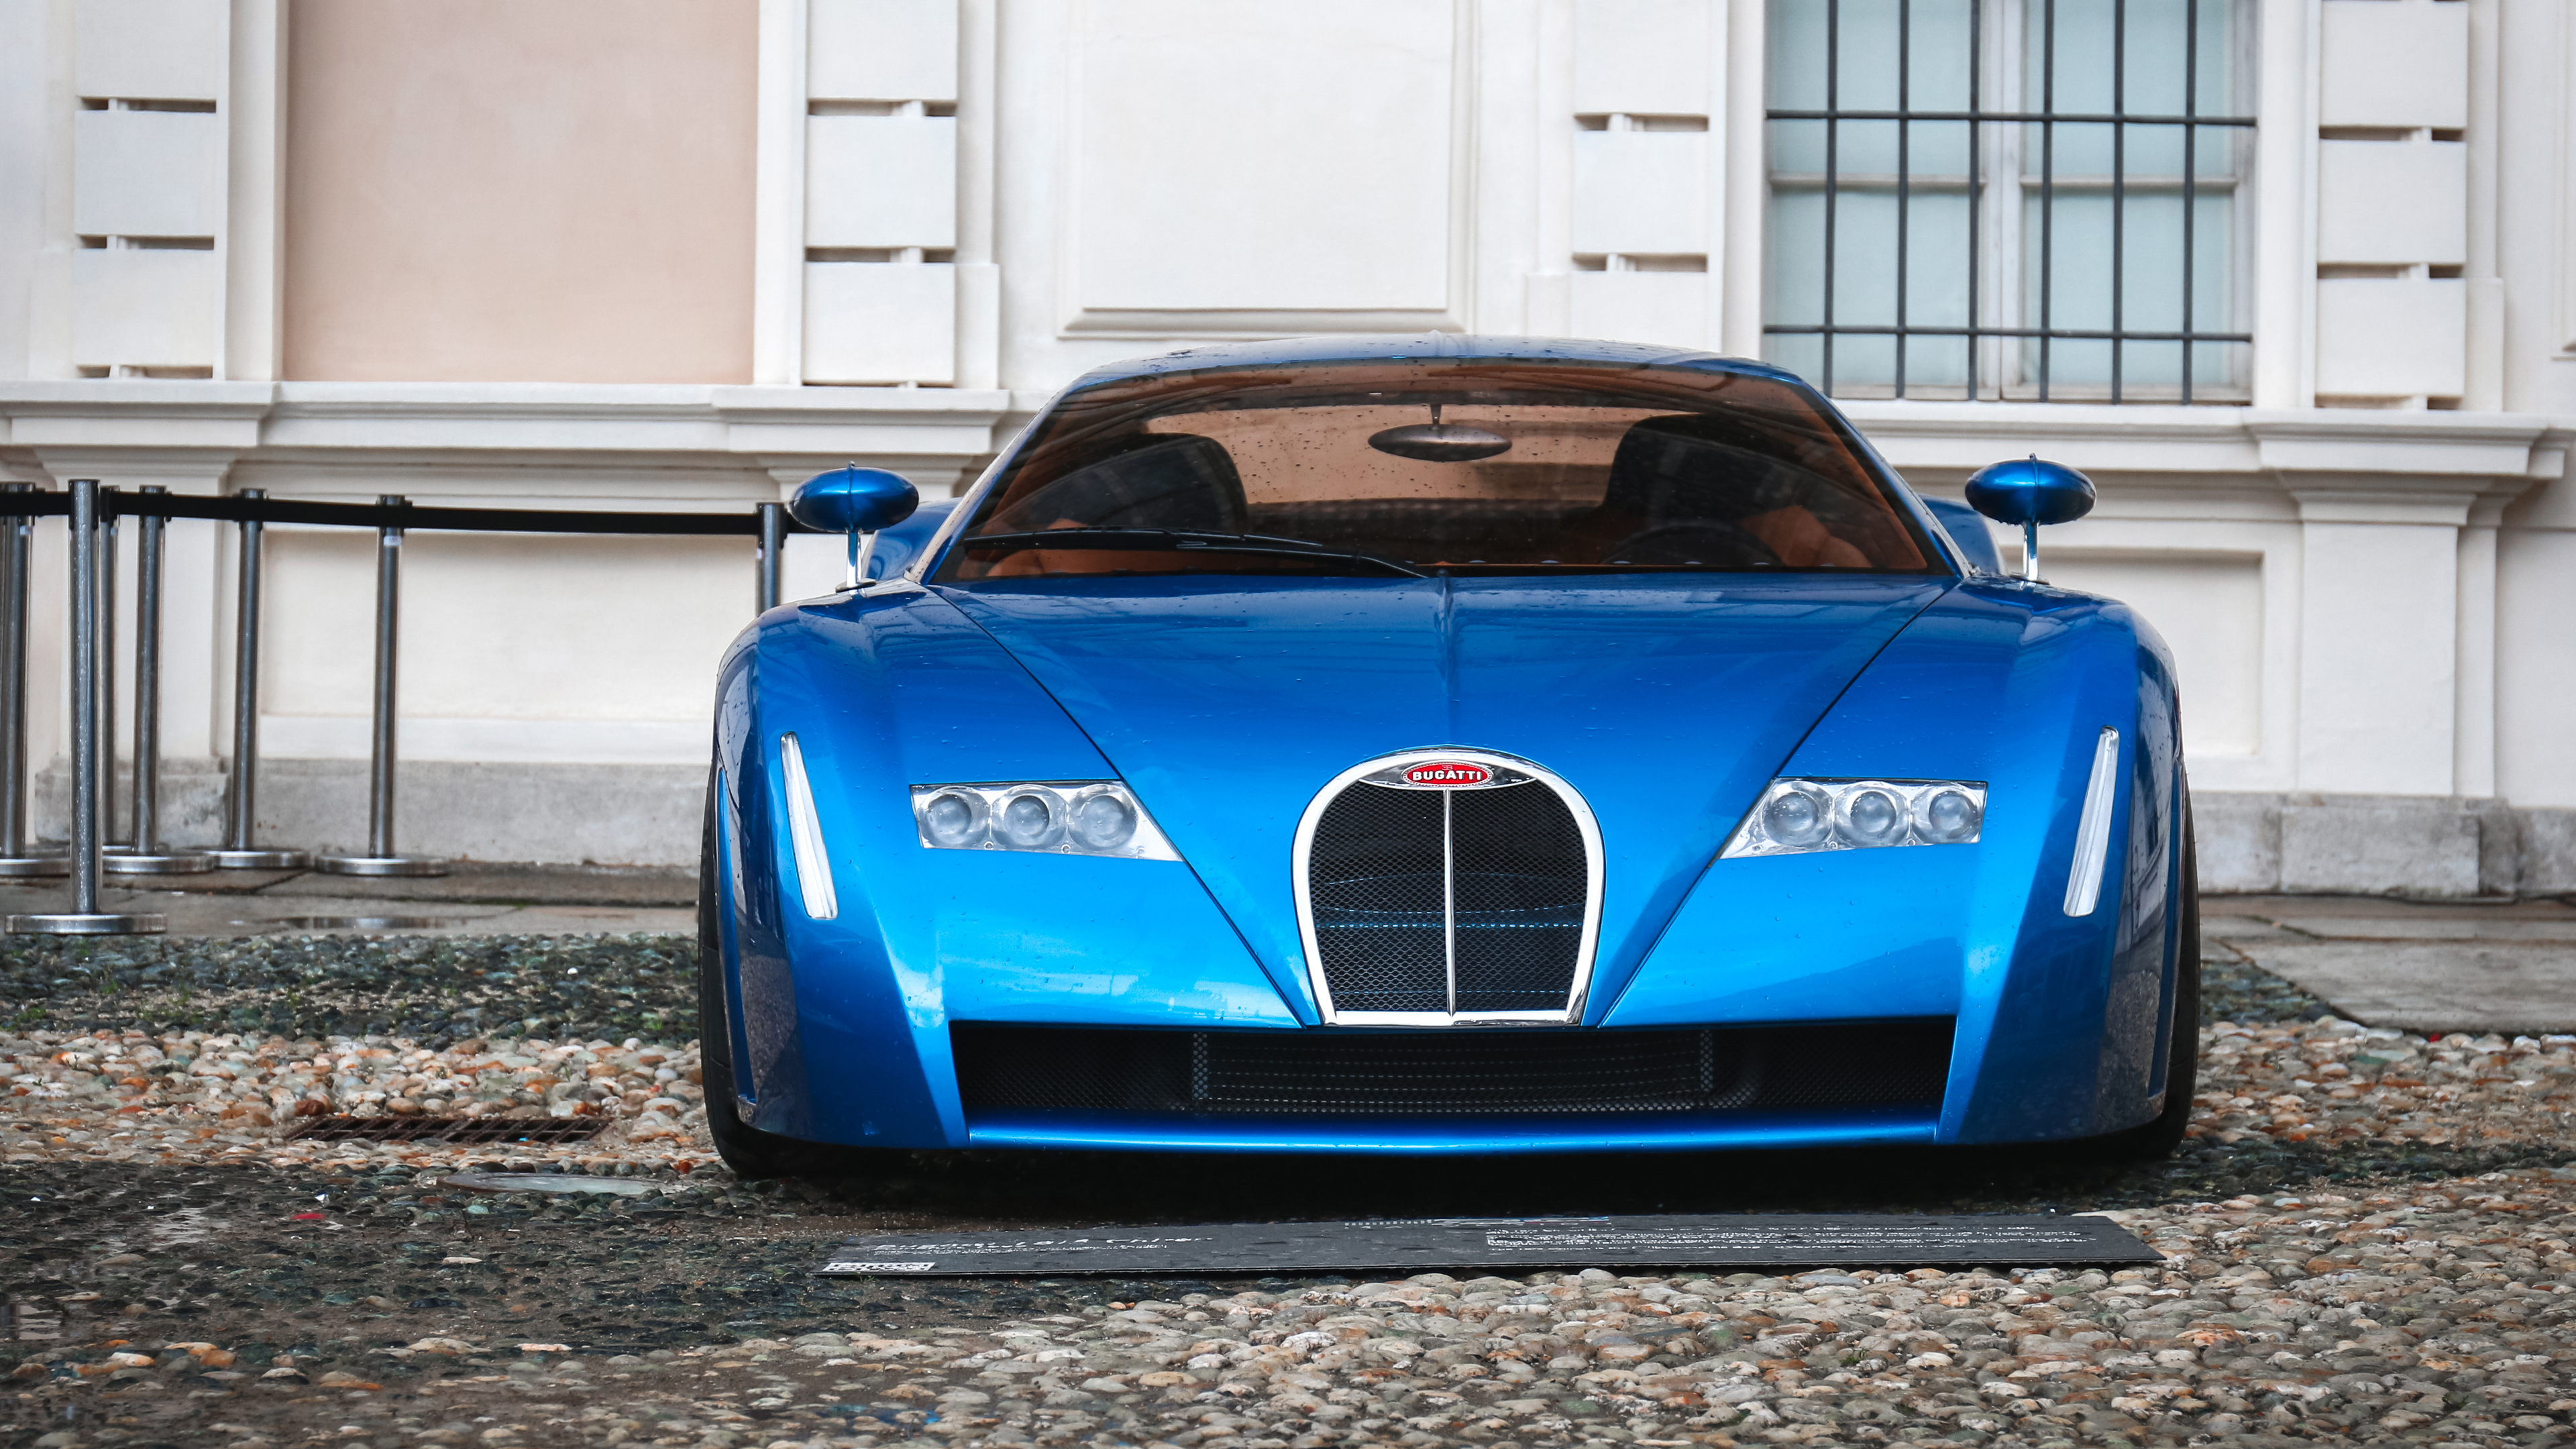 1999 bugatti chiron concept car 1539111752 - 1999 Bugatti Chiron Concept Car - hd-wallpapers, concept cars wallpapers, cars wallpapers, bugatti chiron wallpapers, 5k wallpapers, 4k-wallpapers